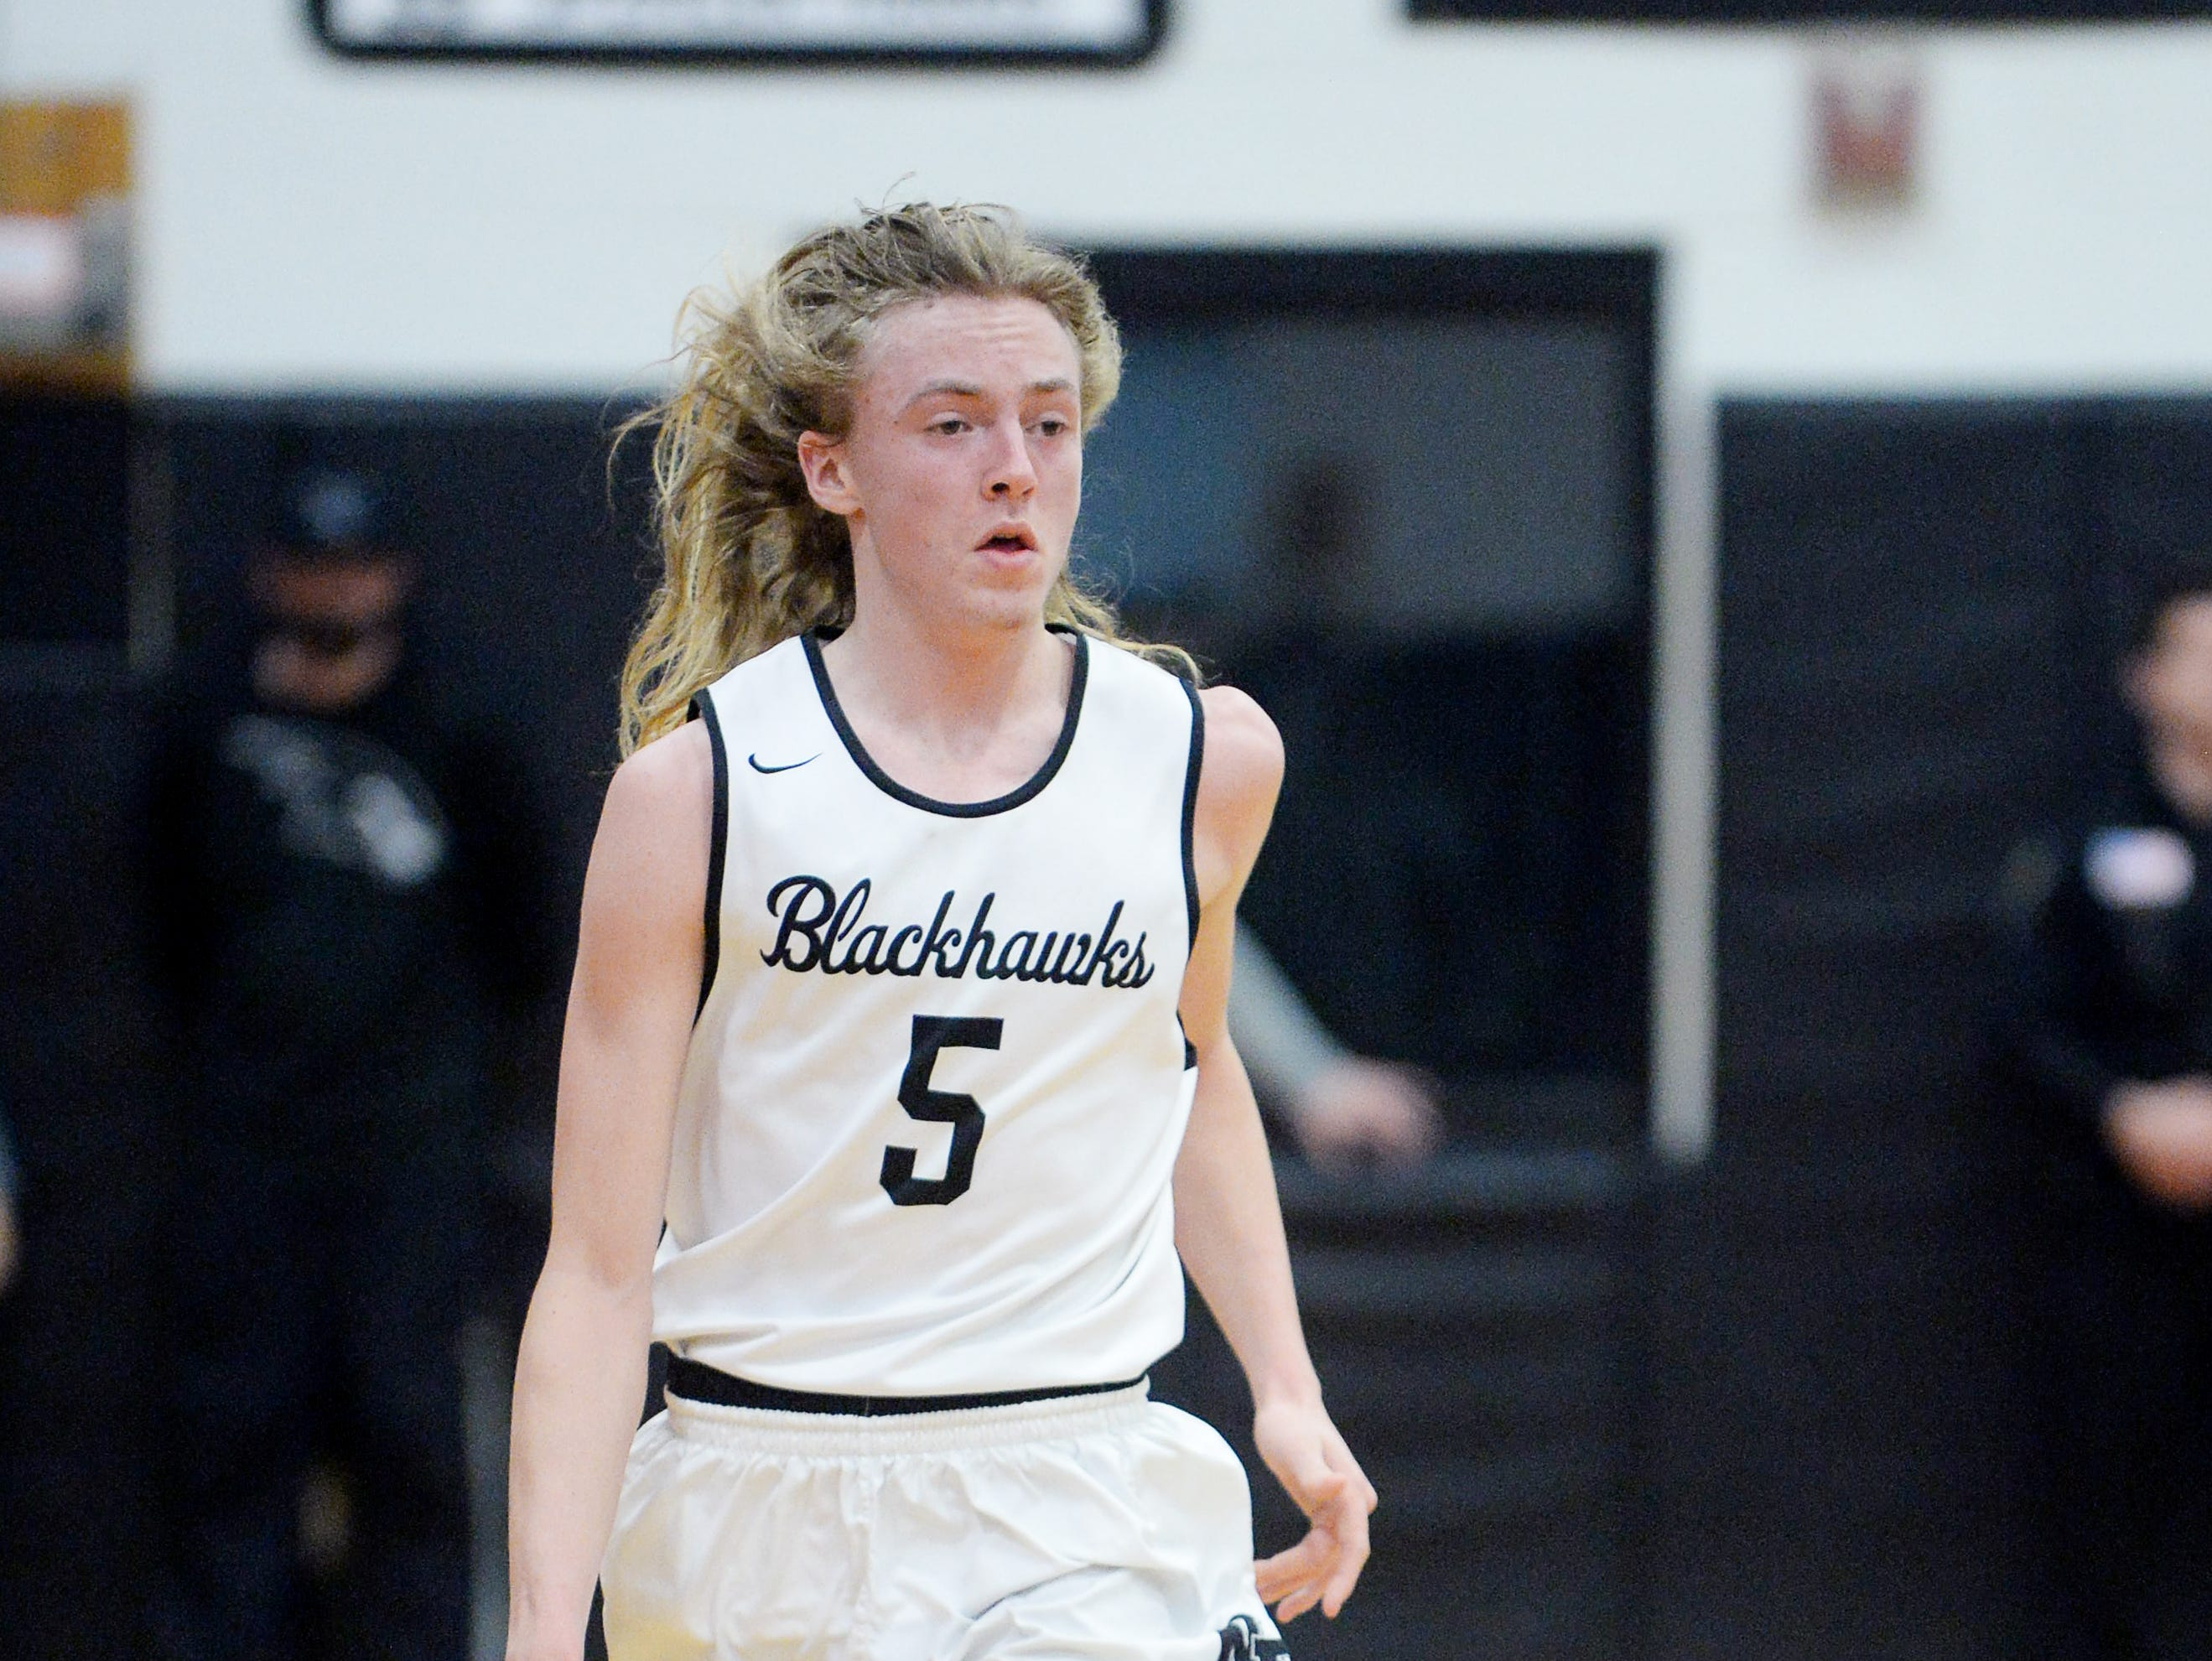 Tuscola defeated North Buncombe 88-85 in Weaverville Tuesday, Feb. 5, 2019.